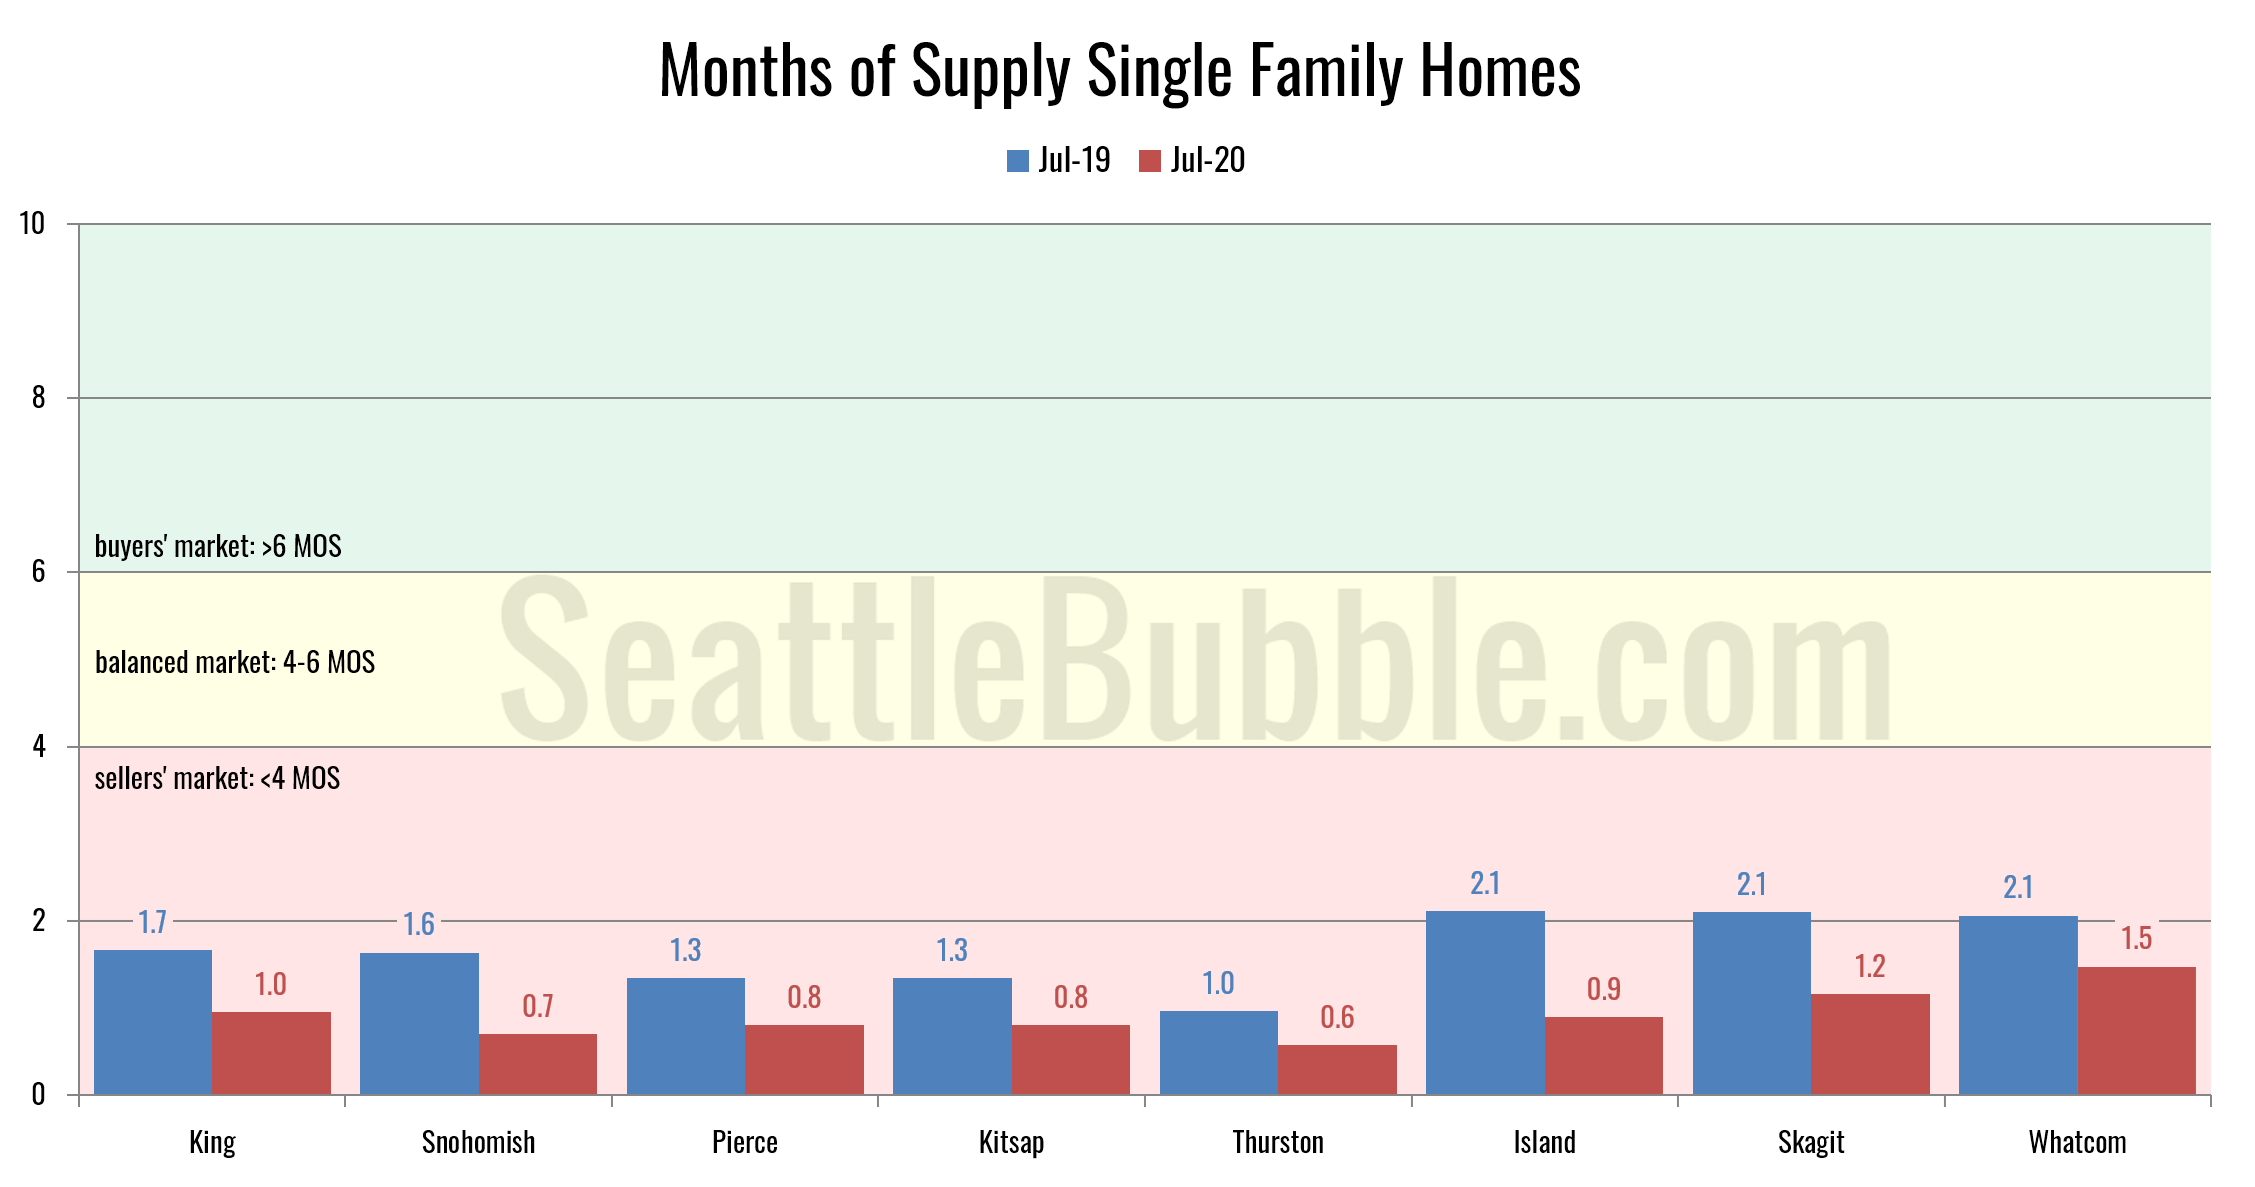 Months of Supply Single Family Homes (July 2020)